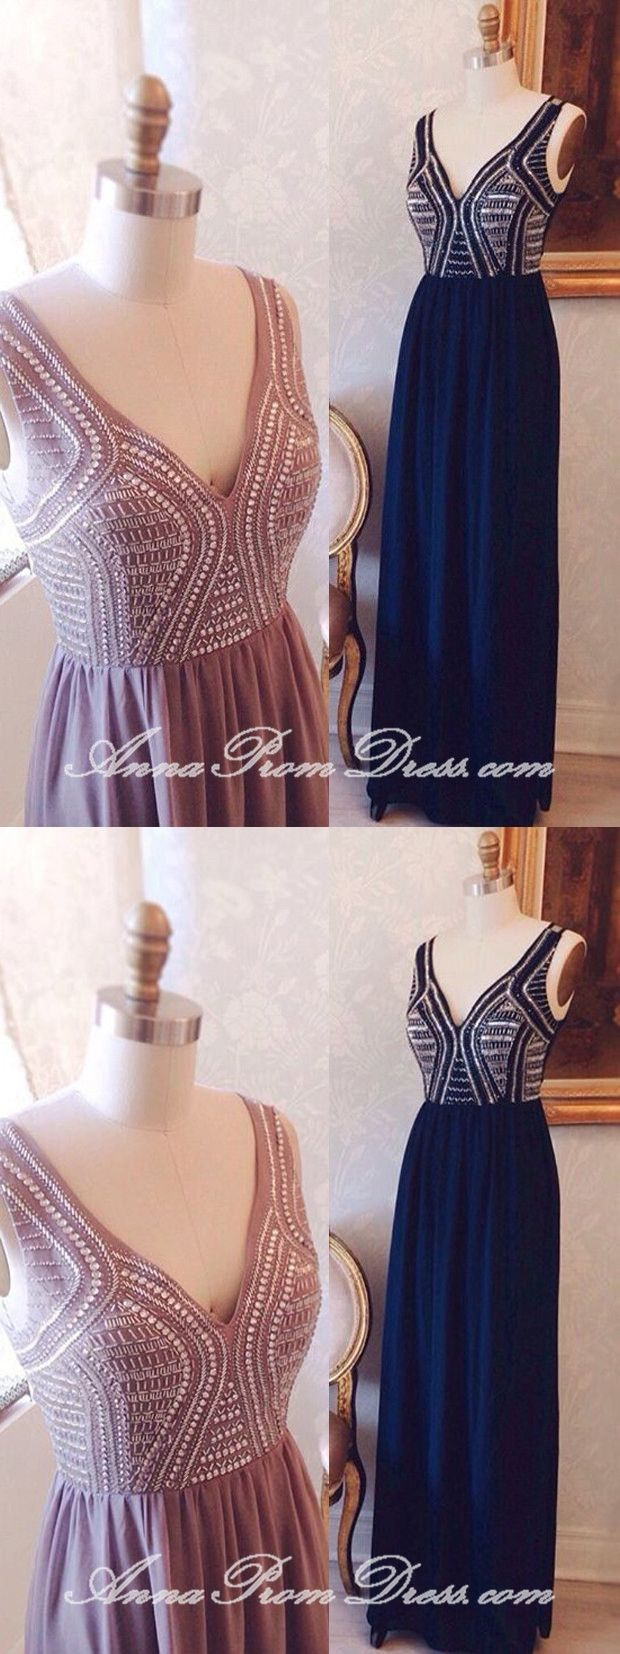 Chic prom dresses v neck a line floorlength beading long sexy prom